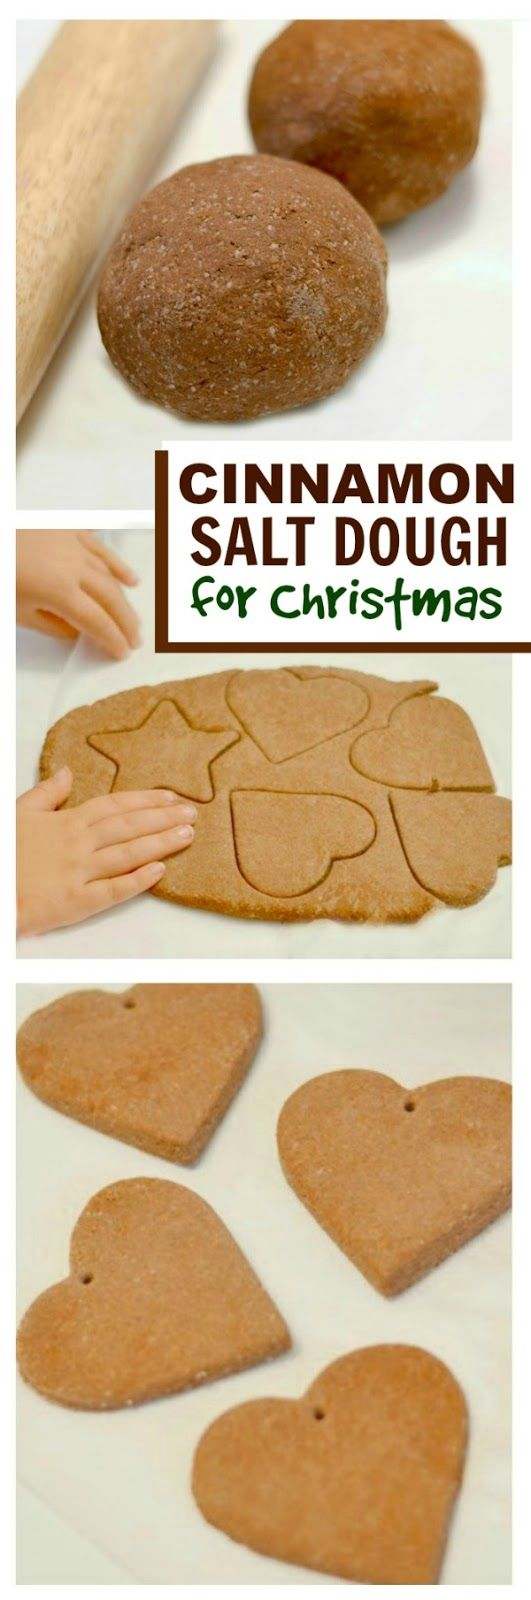 25 unique Salt dough ideas on Pinterest  Childrens christmas